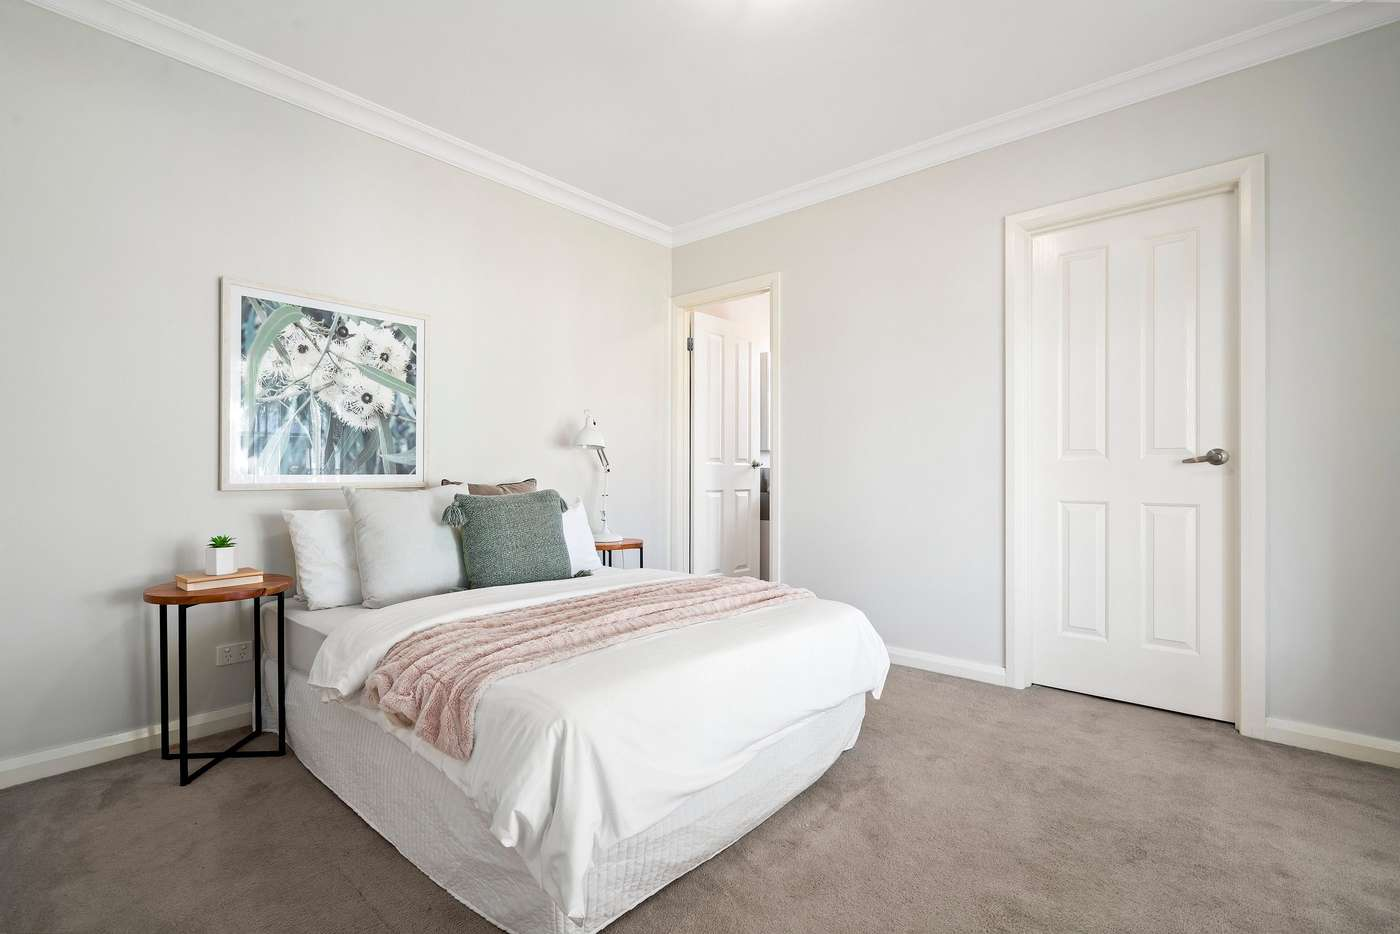 Fifth view of Homely townhouse listing, 1/74 King Street, Airport West VIC 3042